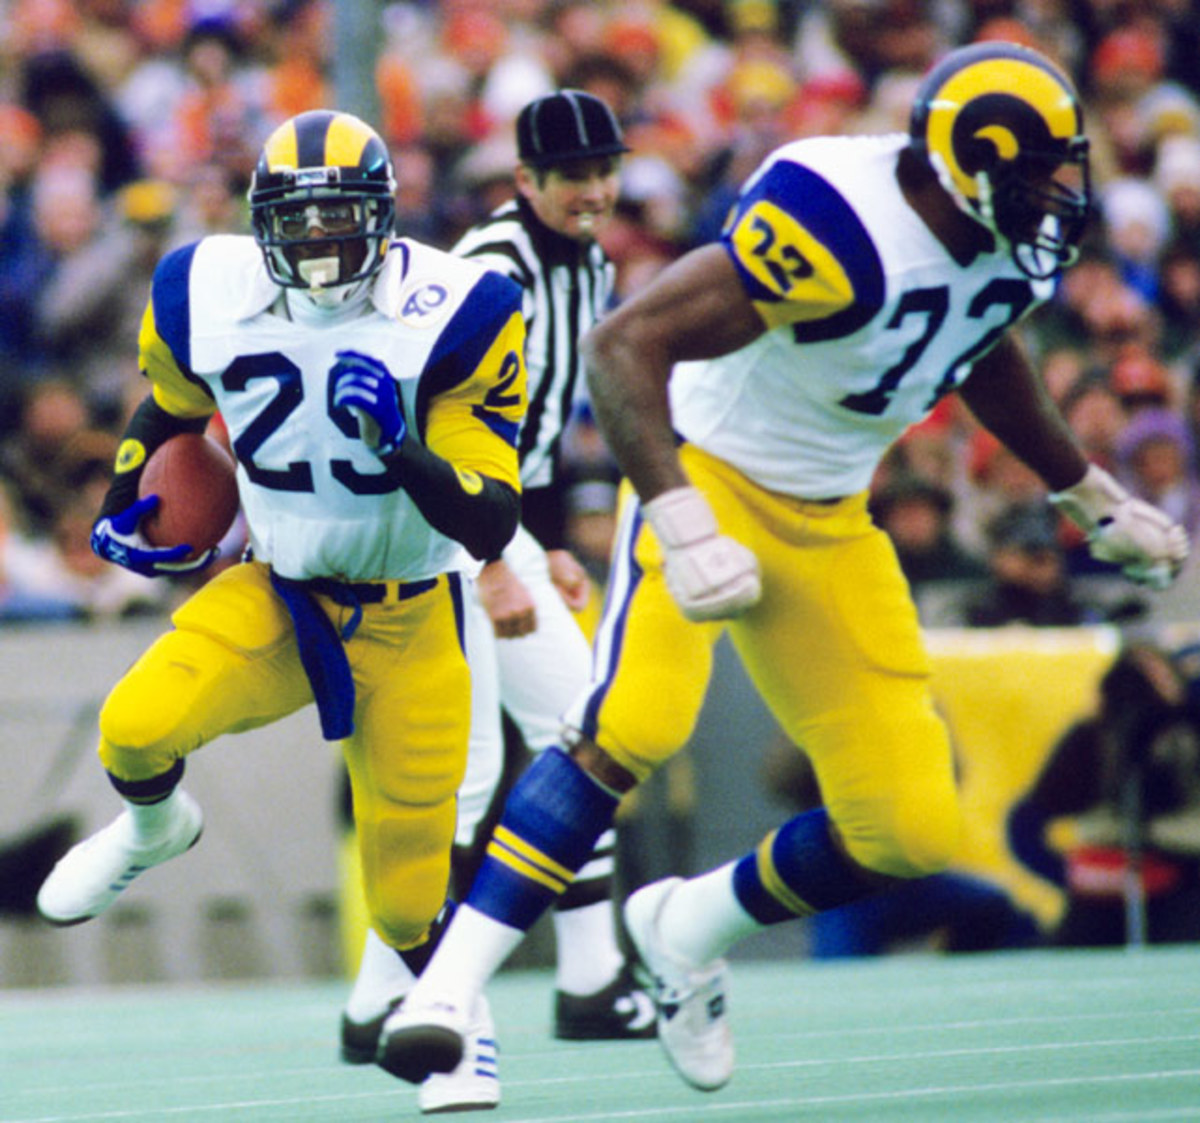 Eric Dickerson: 193 yards, 2 TDs